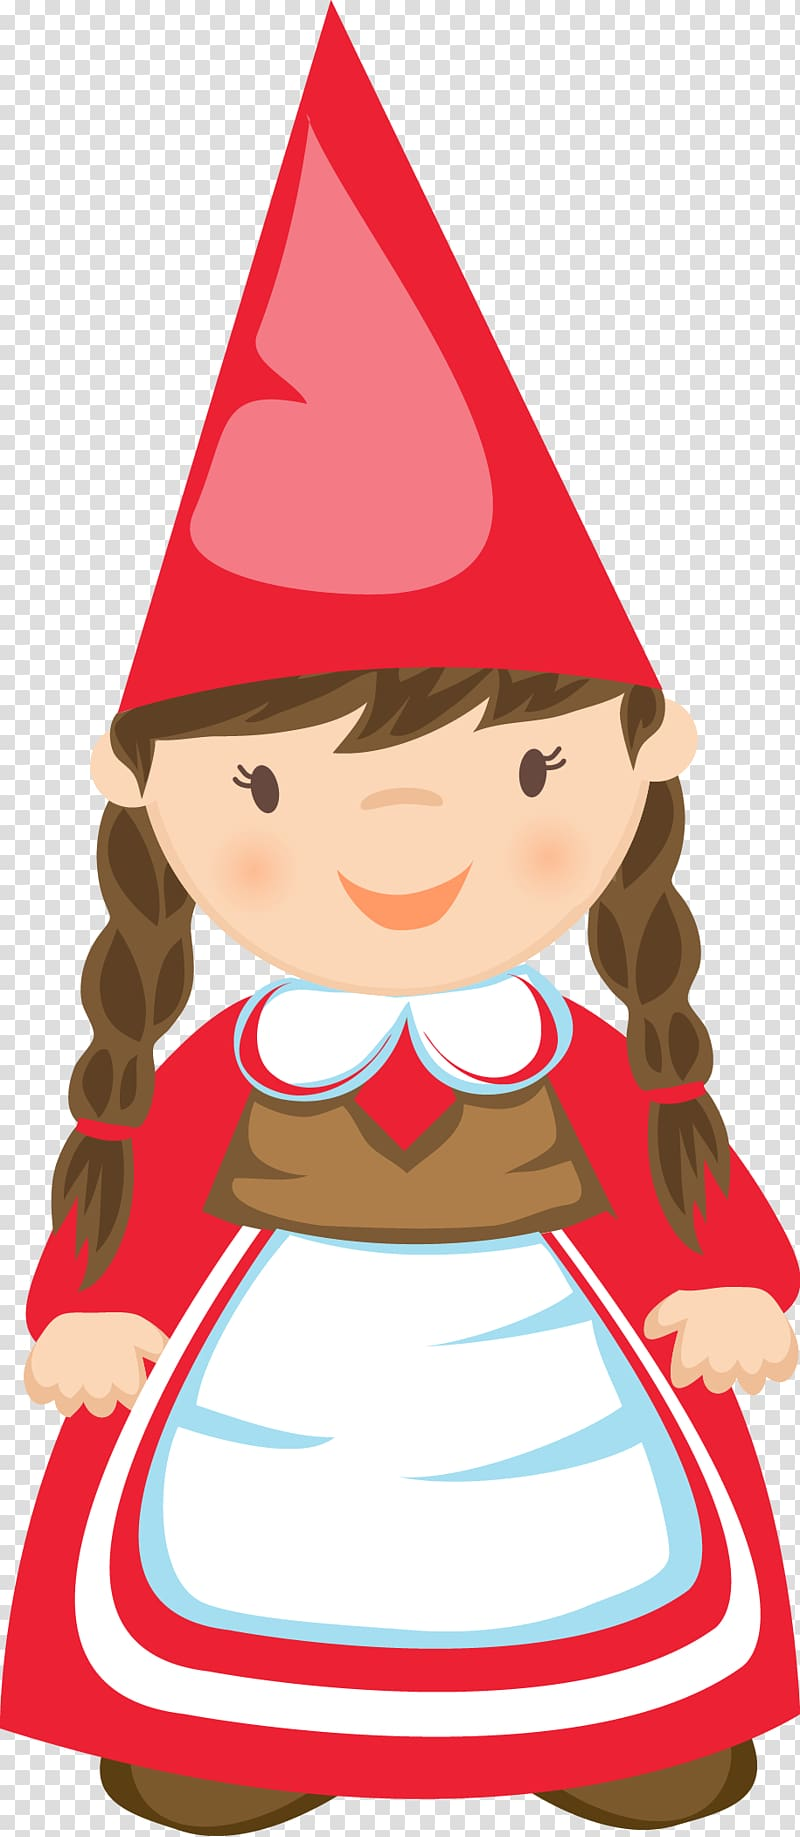 Gnome hat black and white png clipart clipart black and white Garden gnome , cute girl transparent background PNG clipart | HiClipart clipart black and white